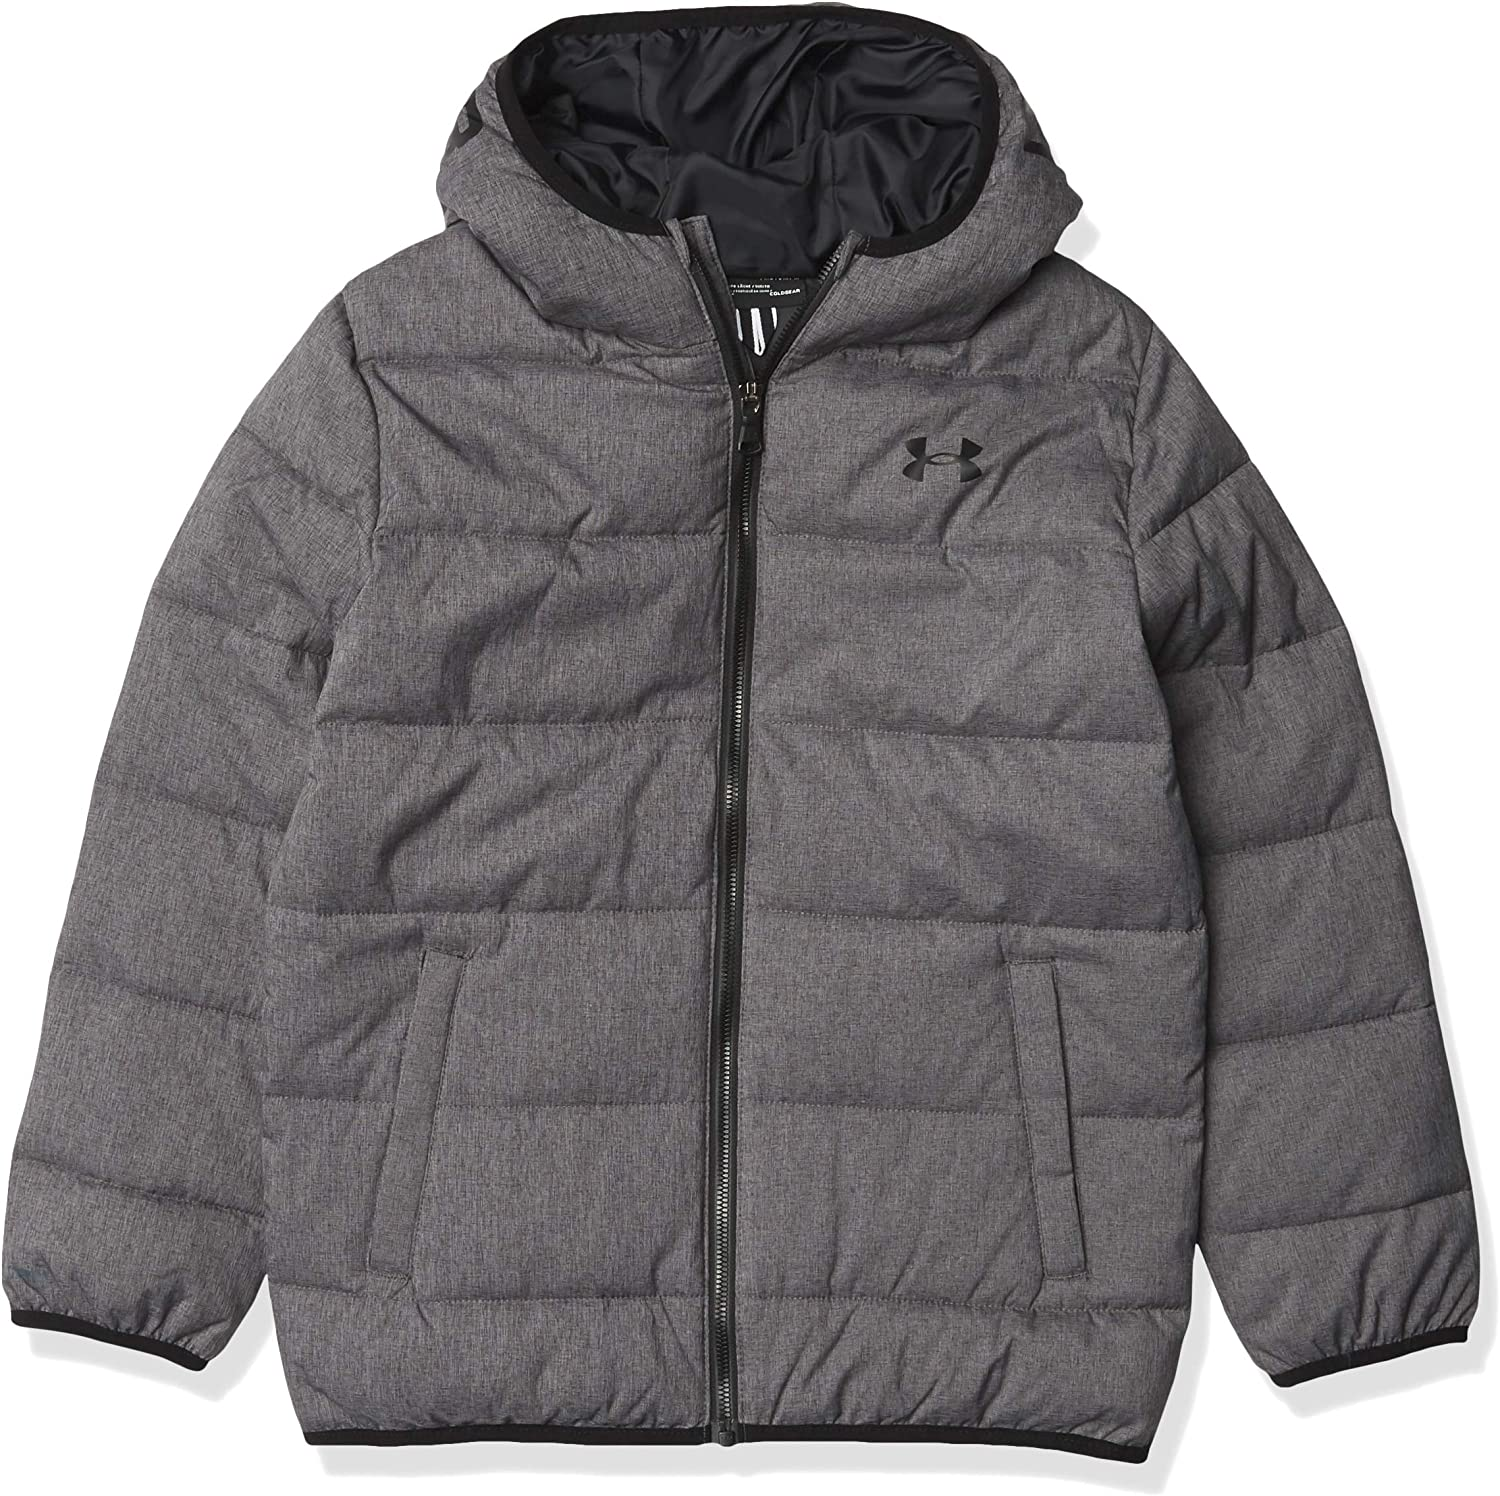 Details about  /New under armour boys pronto puffer jacket coat YMD M 10-12 YLG L 14 Coldgear